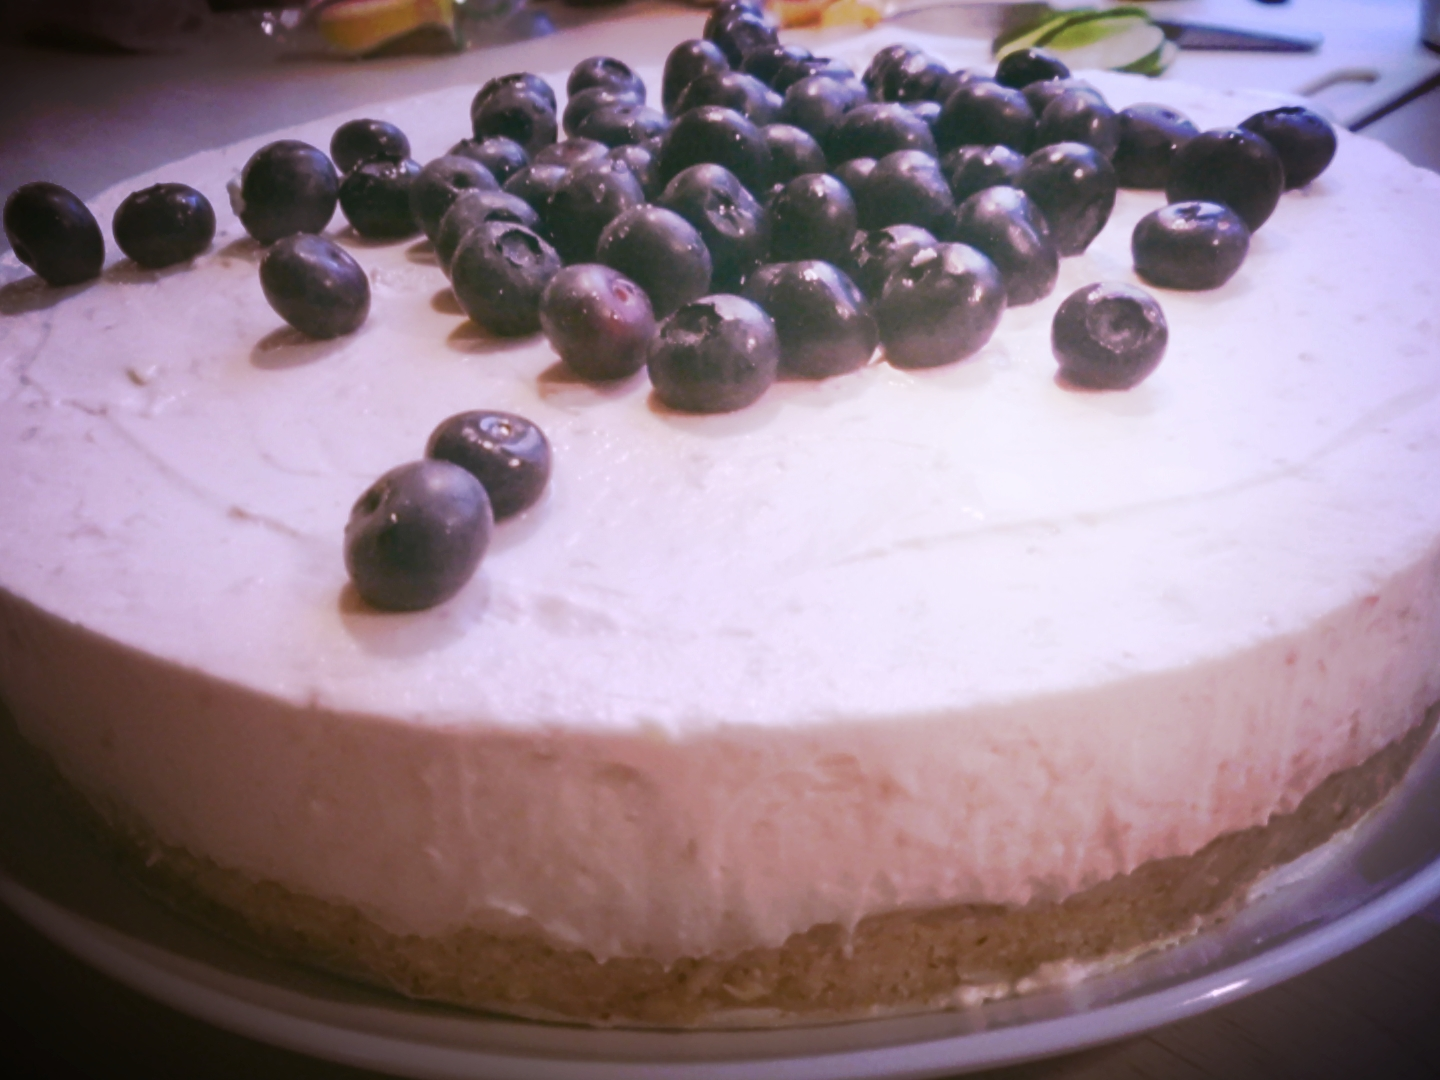 The Dane's cheesecake.  Thanks Chelsea Winter!